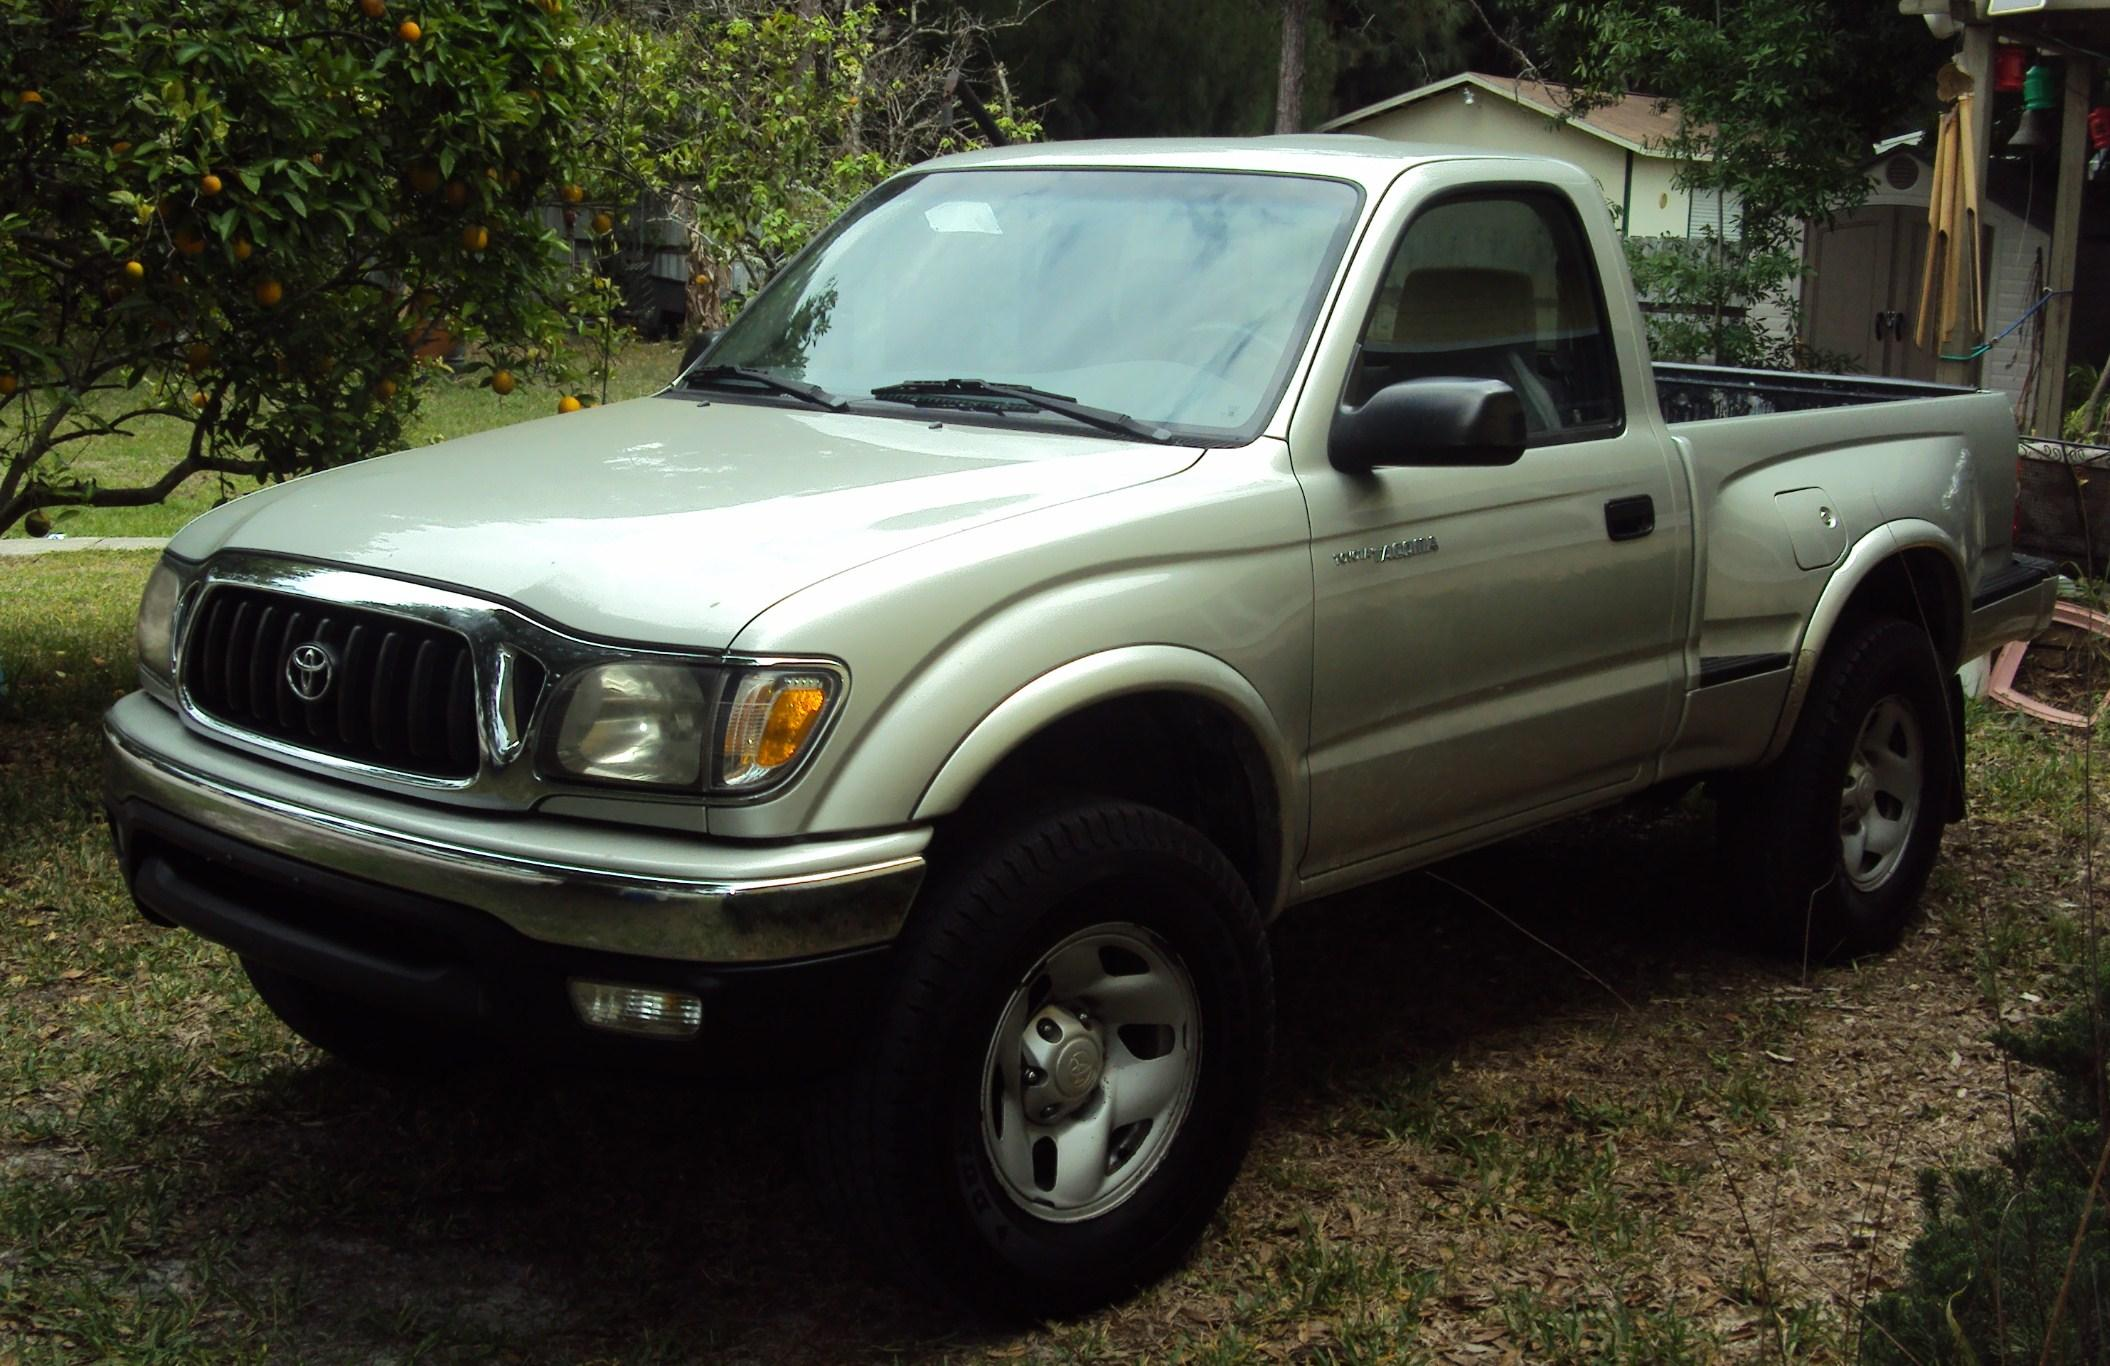 options13's 2001 Toyota Tacoma Regular Cab